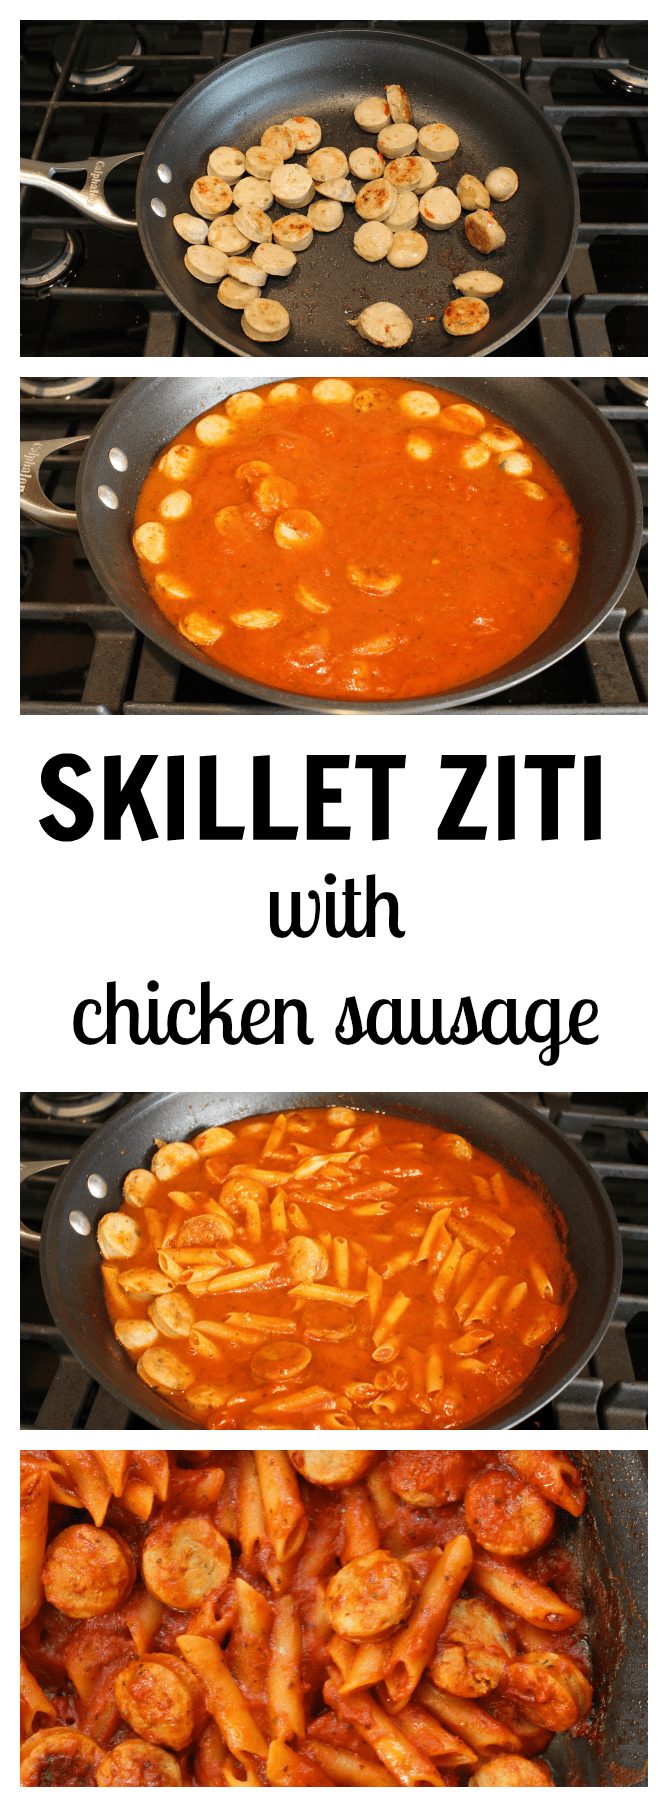 Skillet Ziti with Chicken Sausage takes comfort food to a whole new level with just 4 simple ingredients and one non-stick skillet!